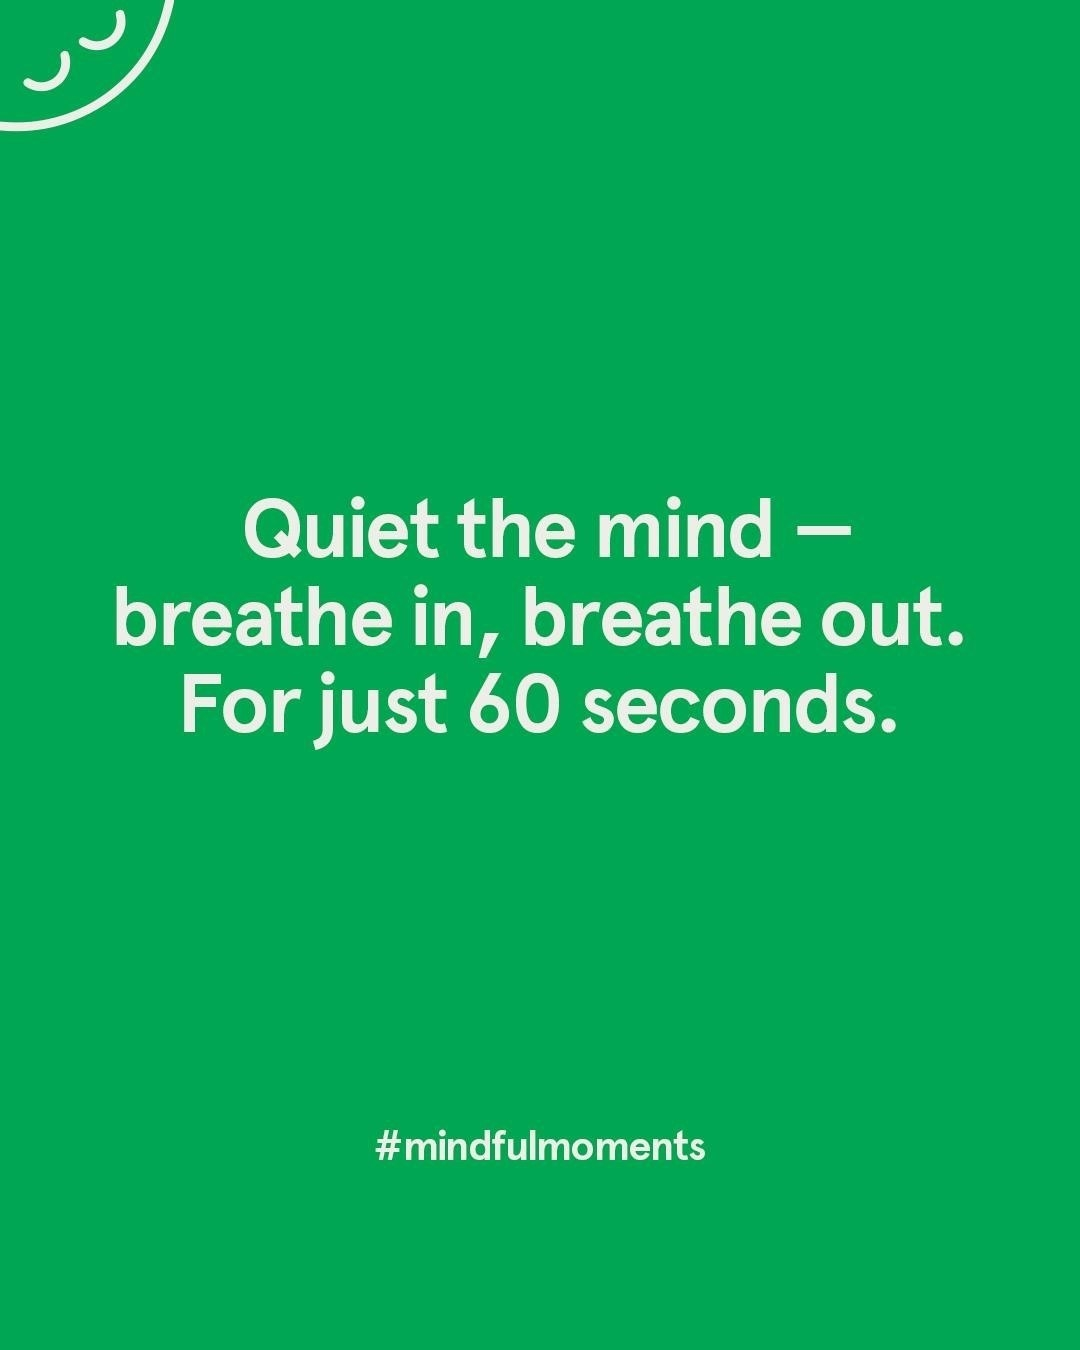 """a green square with the words """"quiet the mind breath in, breath out. for just 60 seconds"""" on it"""